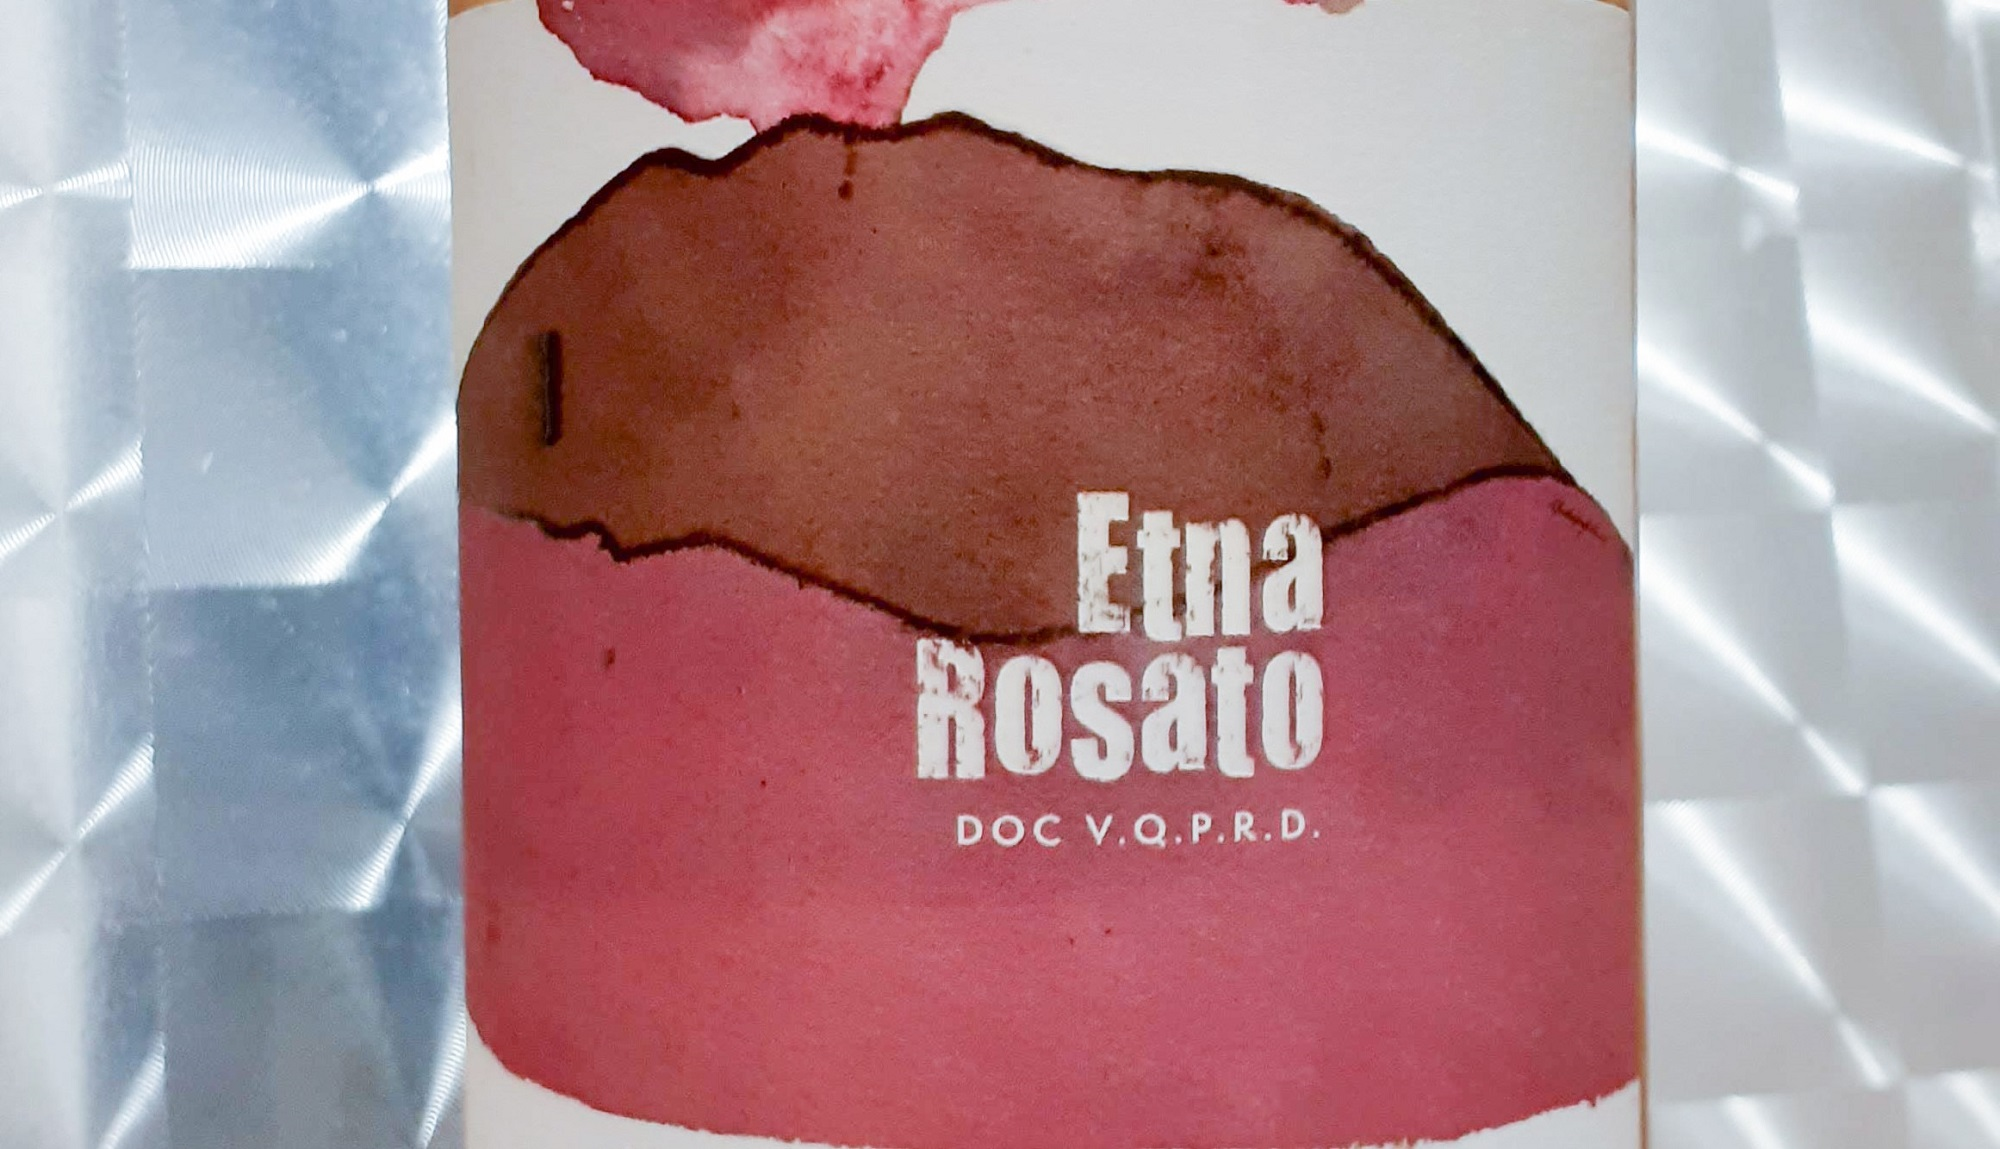 Barone di Villagrande Rosato Etna DOC 2019